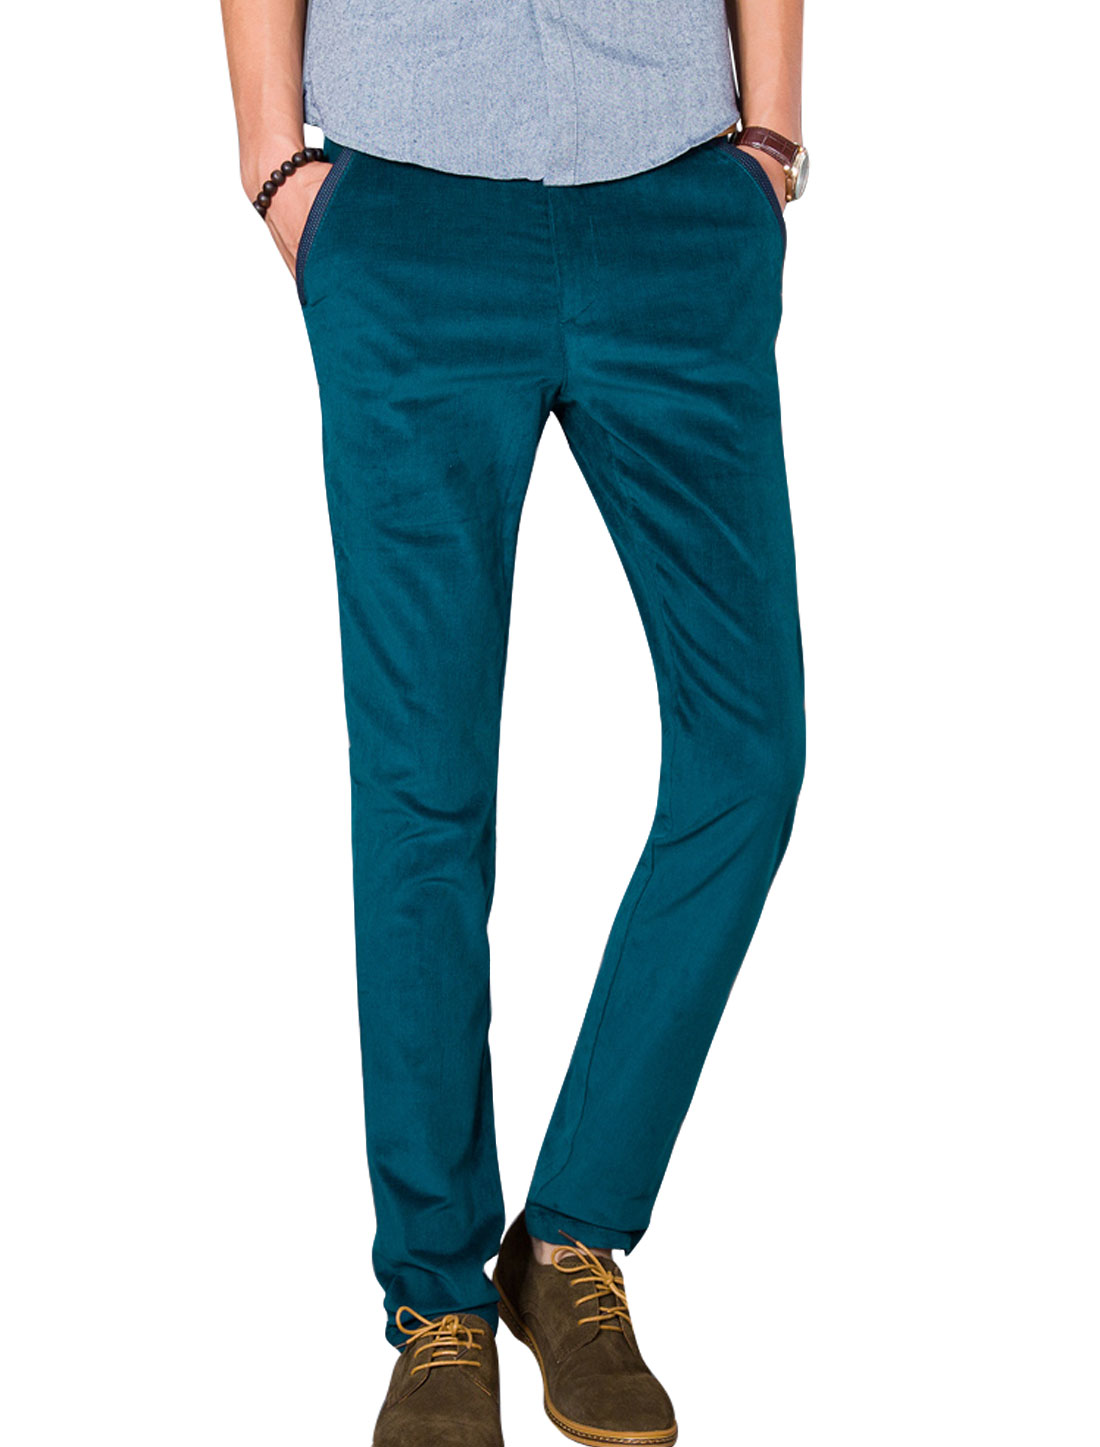 Men Deep Sea Blue Zip Fly Button Closure Belt Loop Front Pockets Casaul Pants W 32